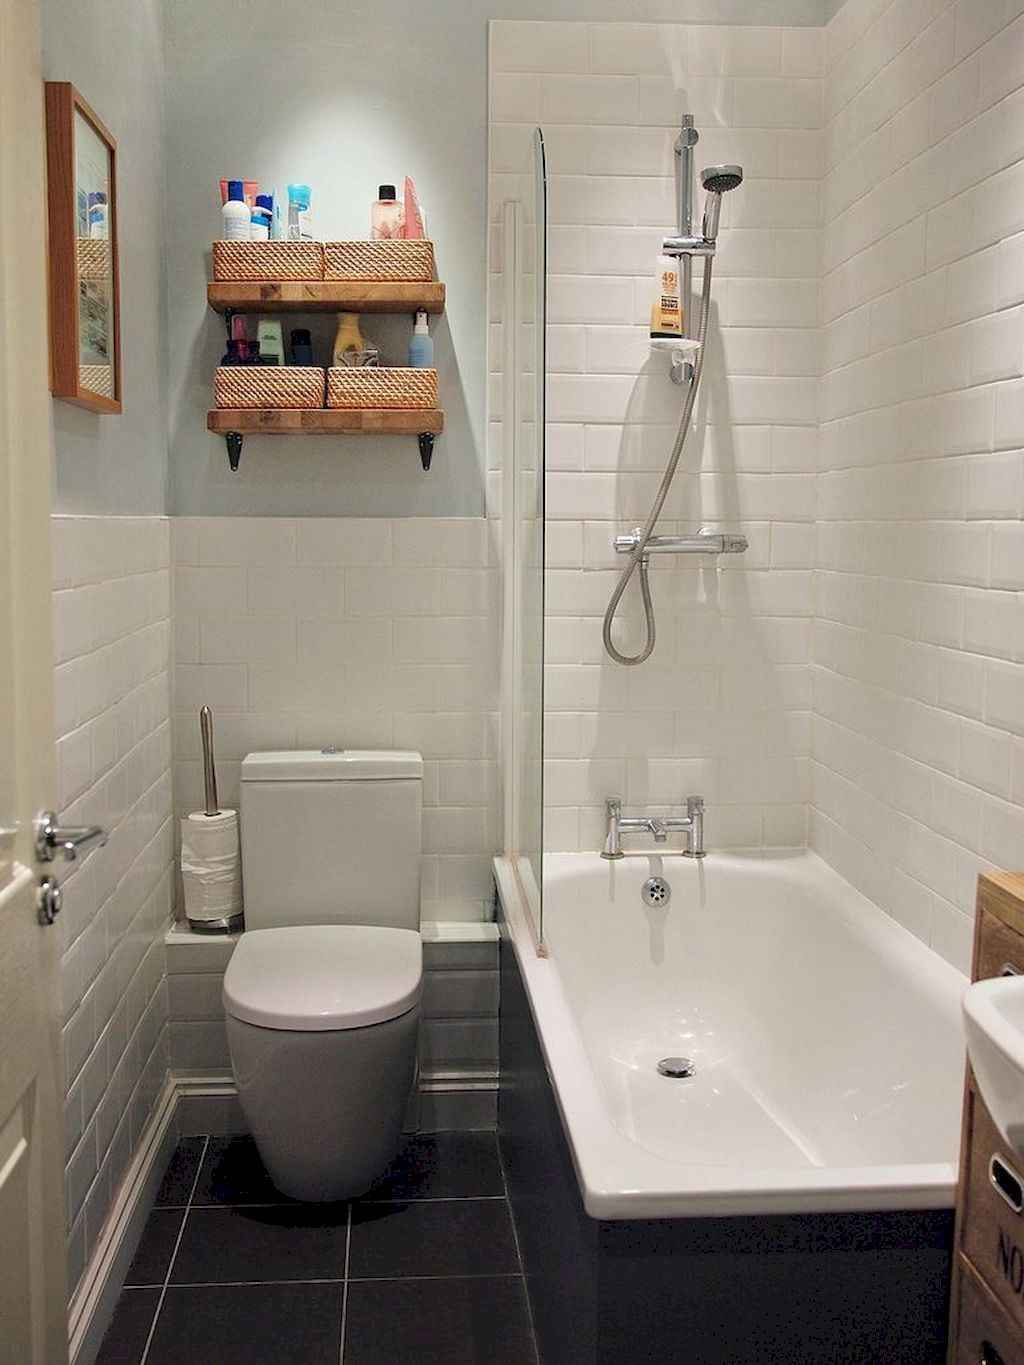 111 awesome small bathroom remodel ideas on a budget (48)